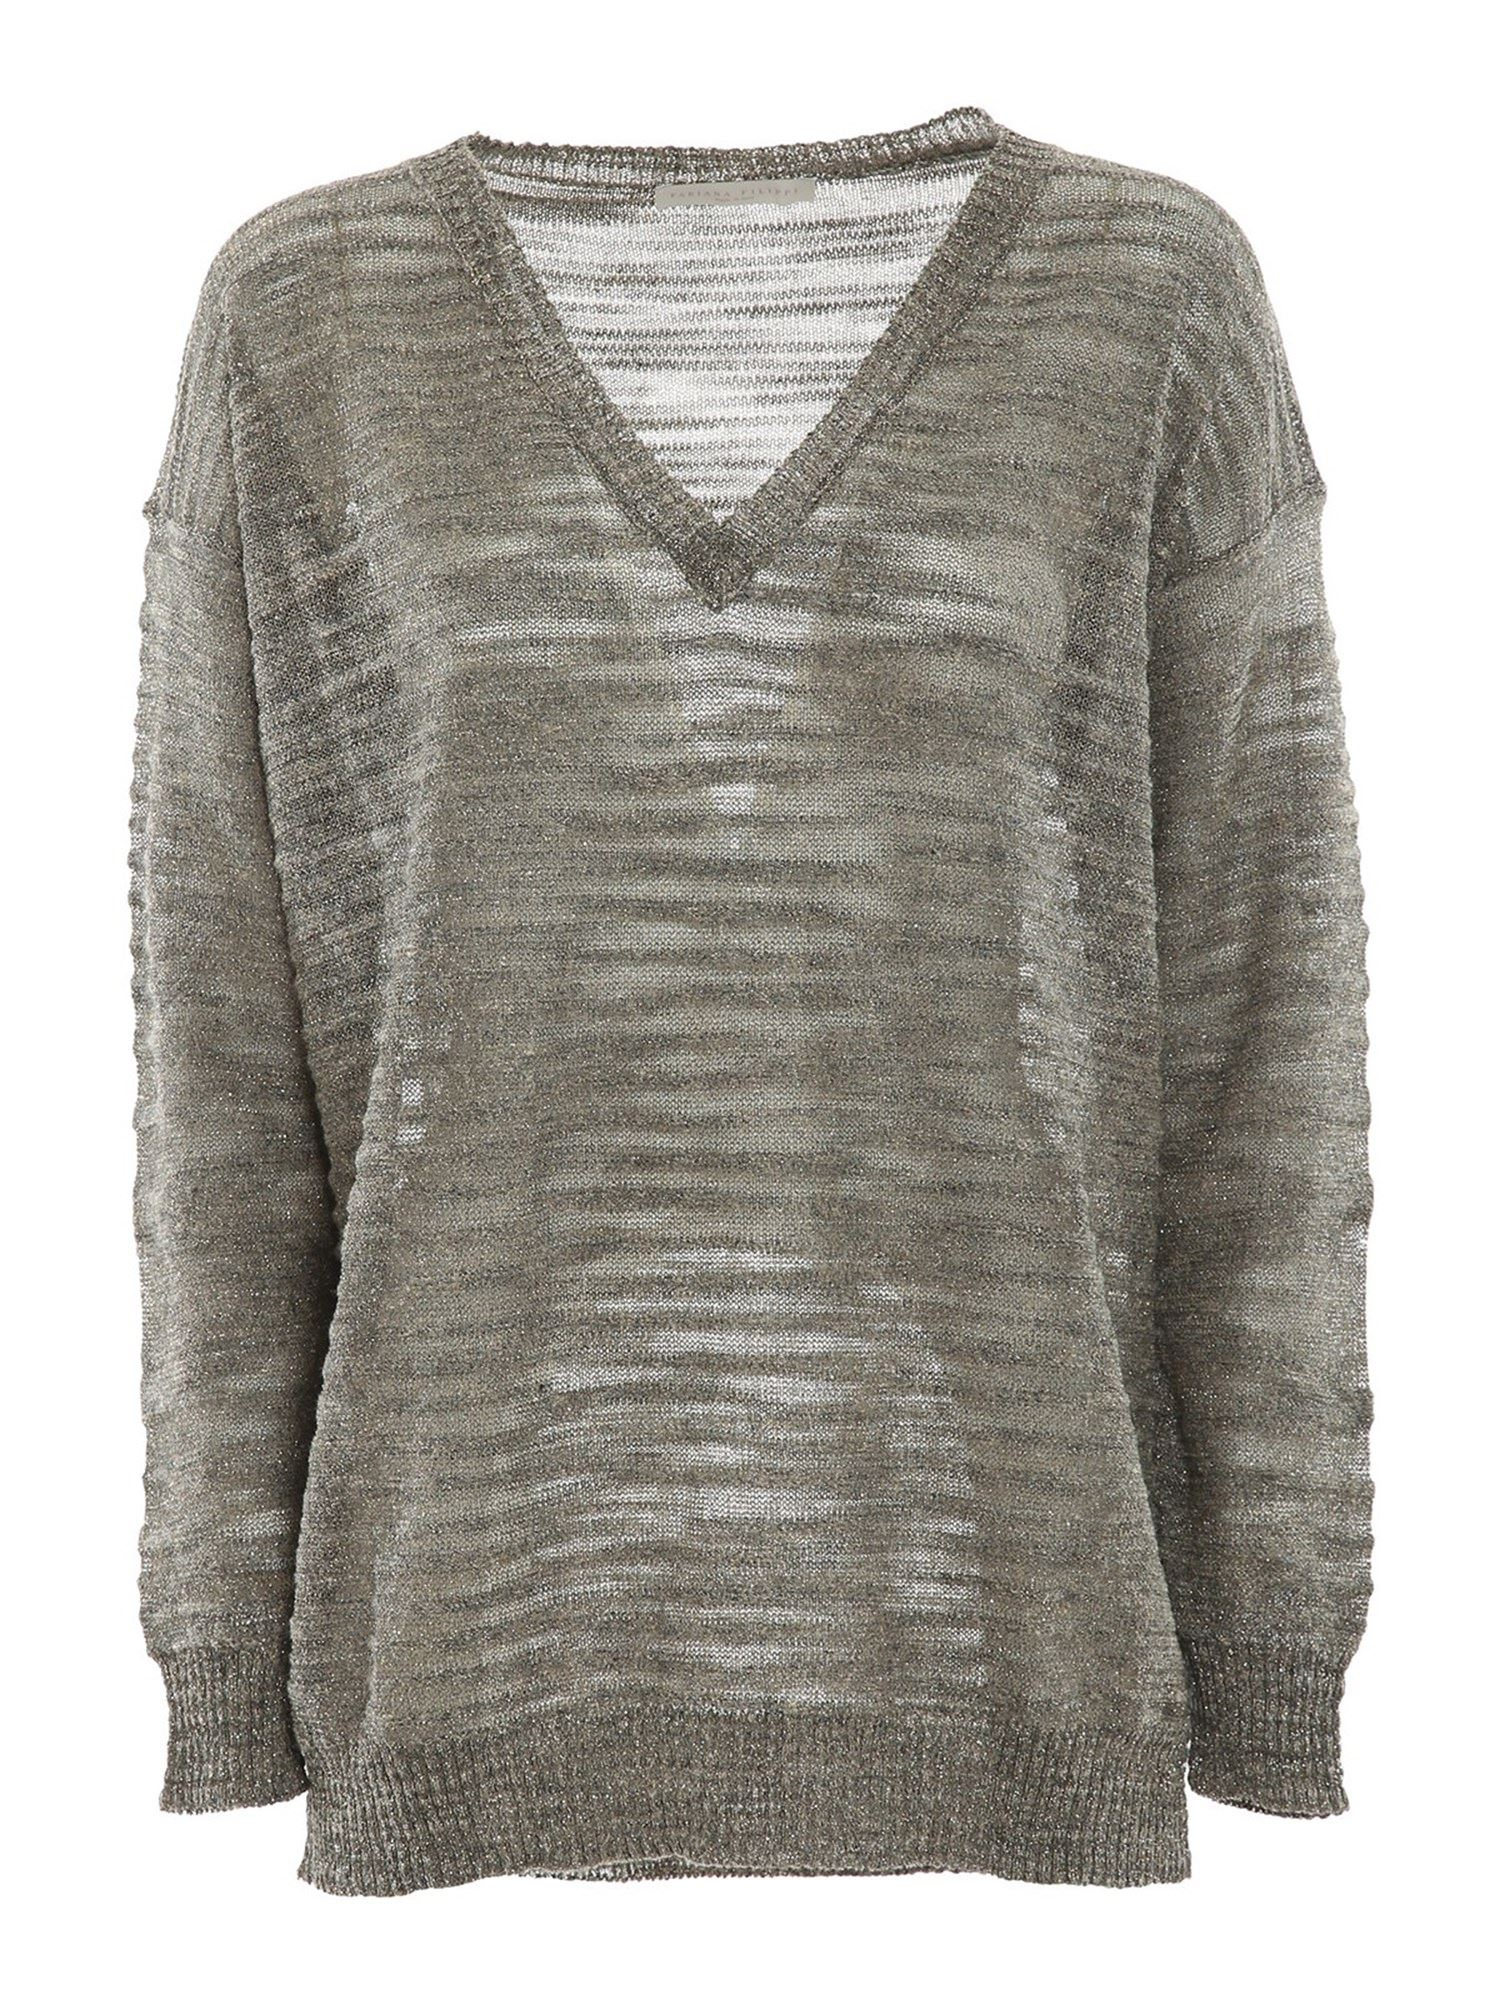 Fabiana Filippi LUREX-KNIT V NECK JUMPER IN GREY